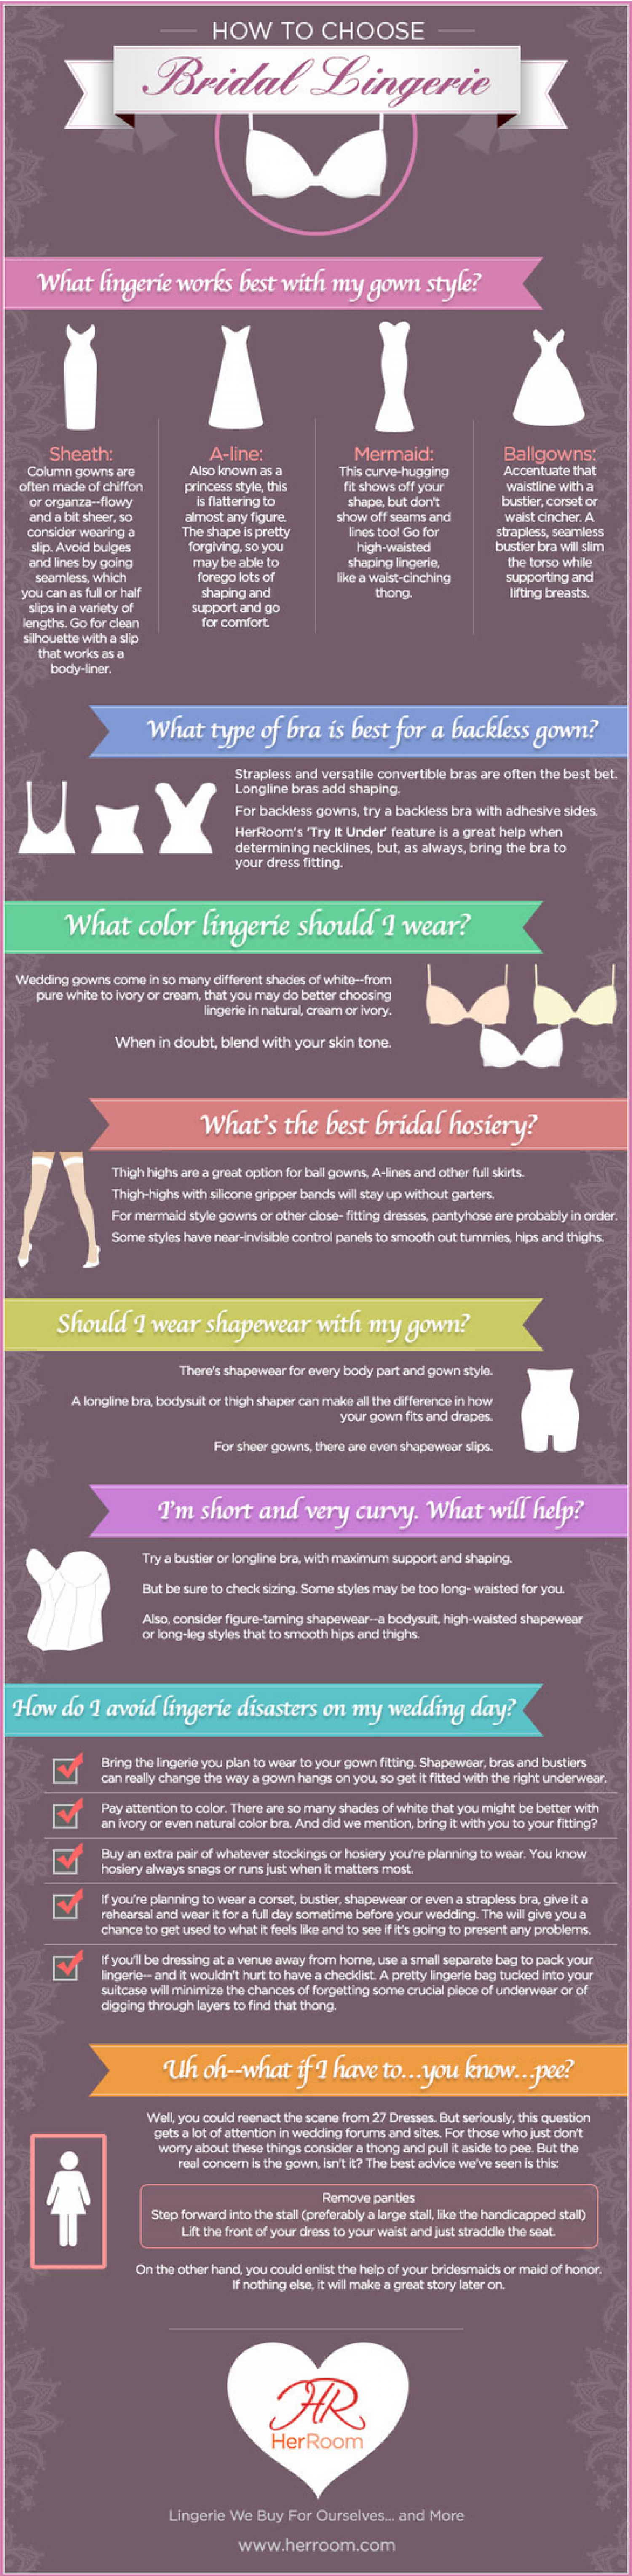 Choosing The Perfect Bridal Lingerie Infographic